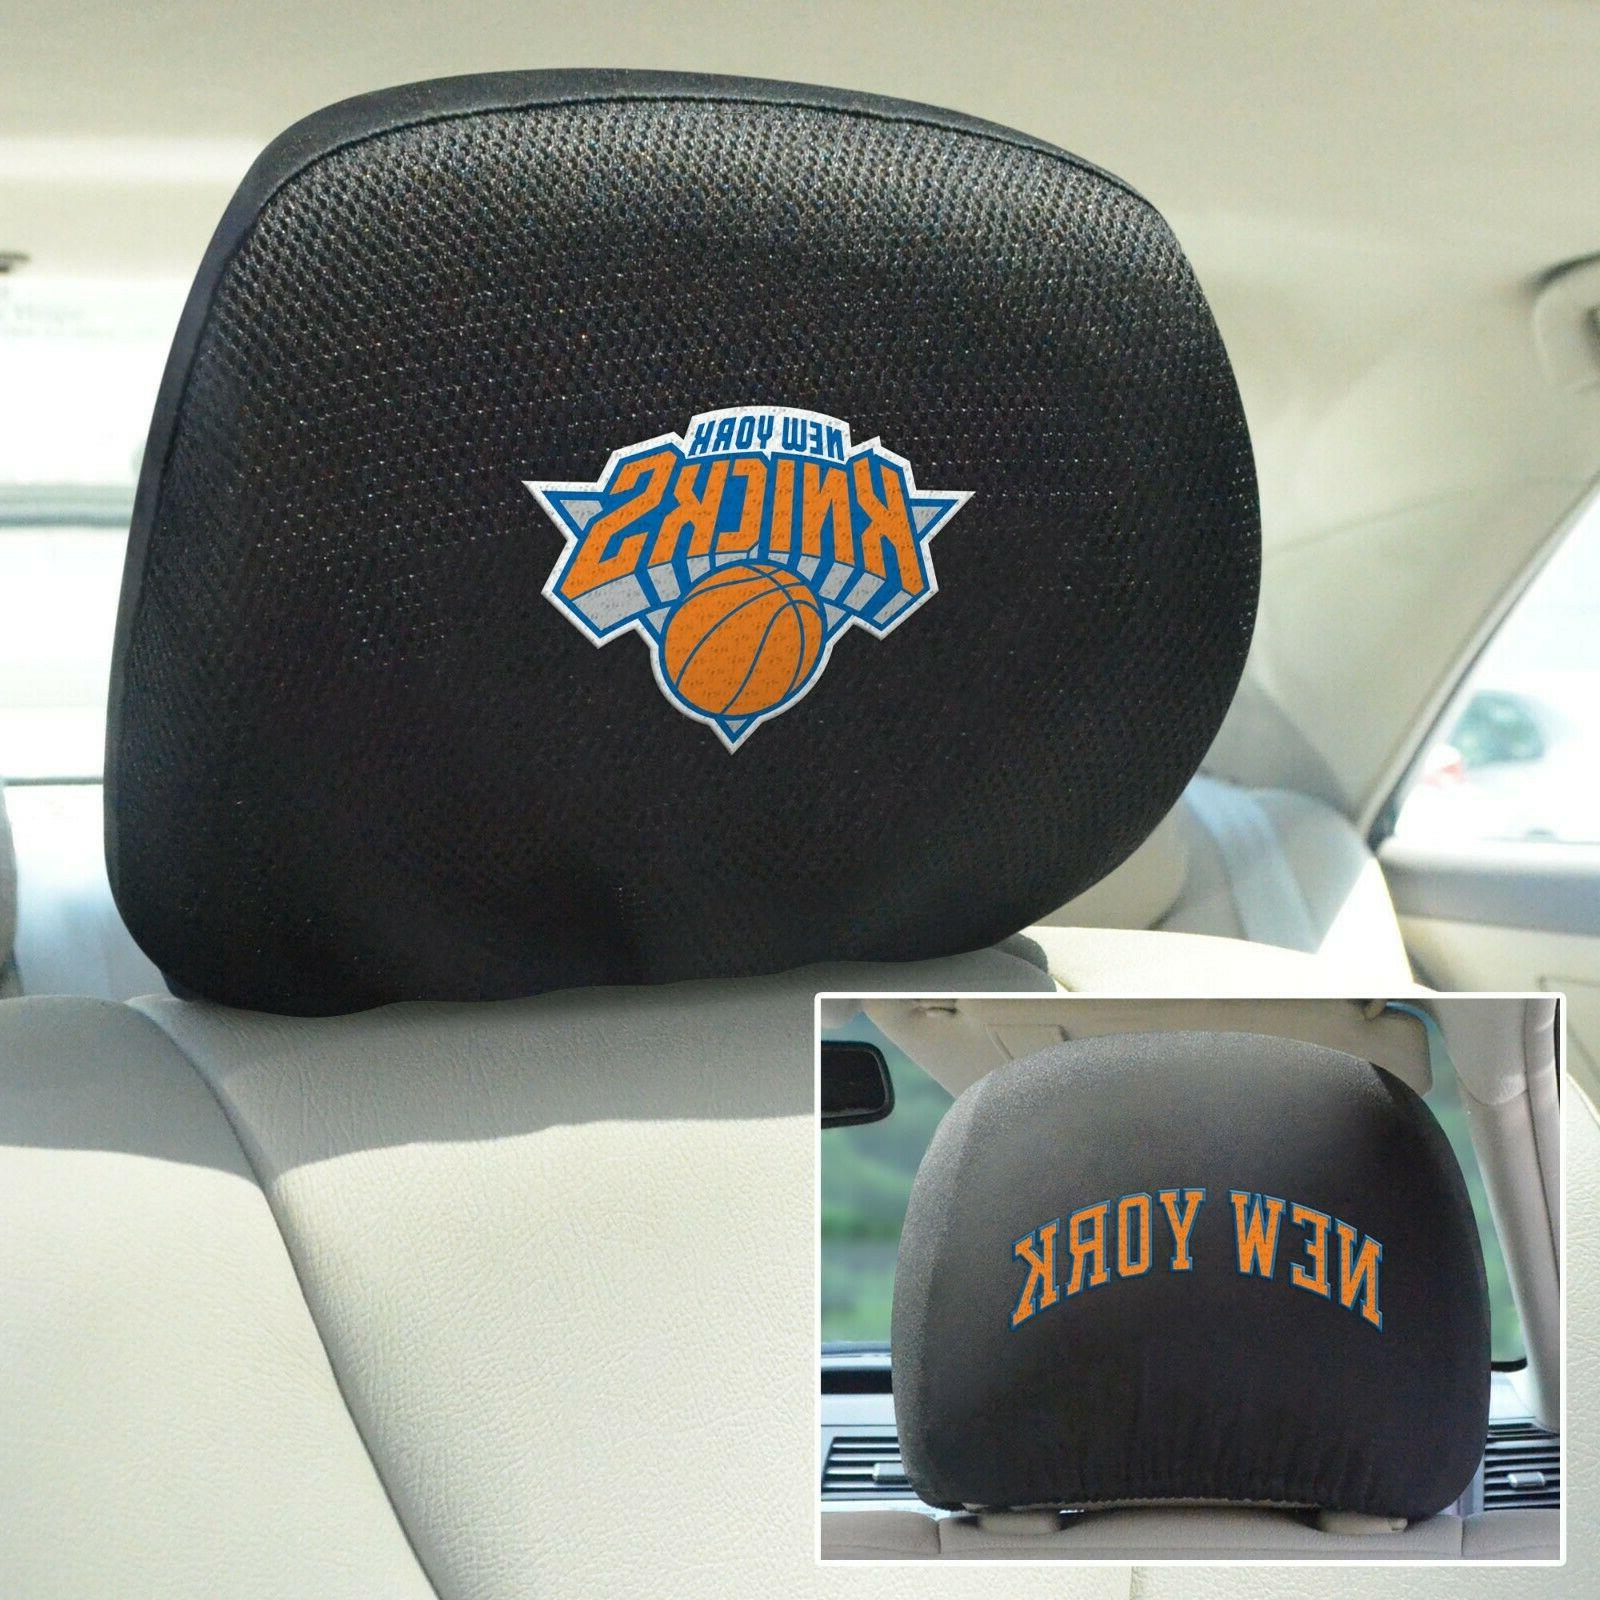 brand new nba new york knicks set